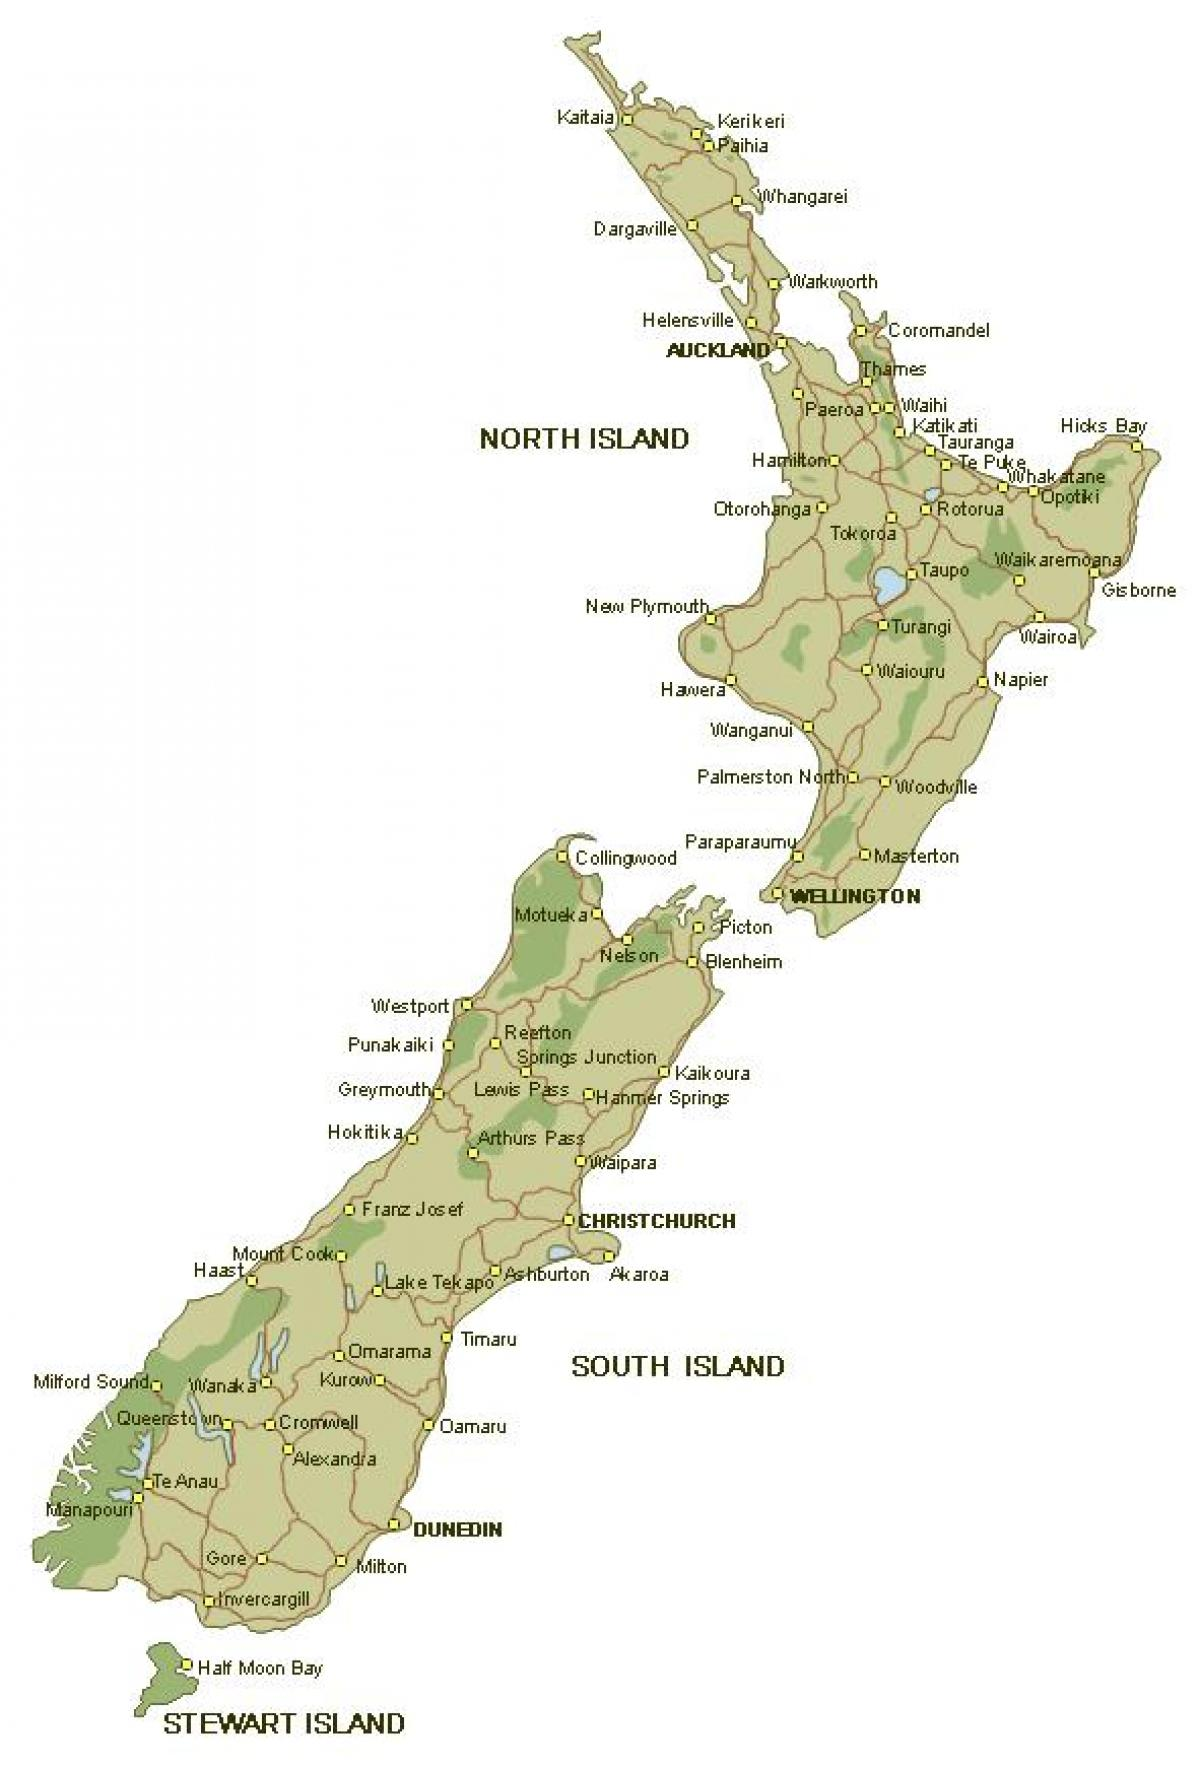 Detailed map of new zealand - Map of detailed new zealand (Australia ...